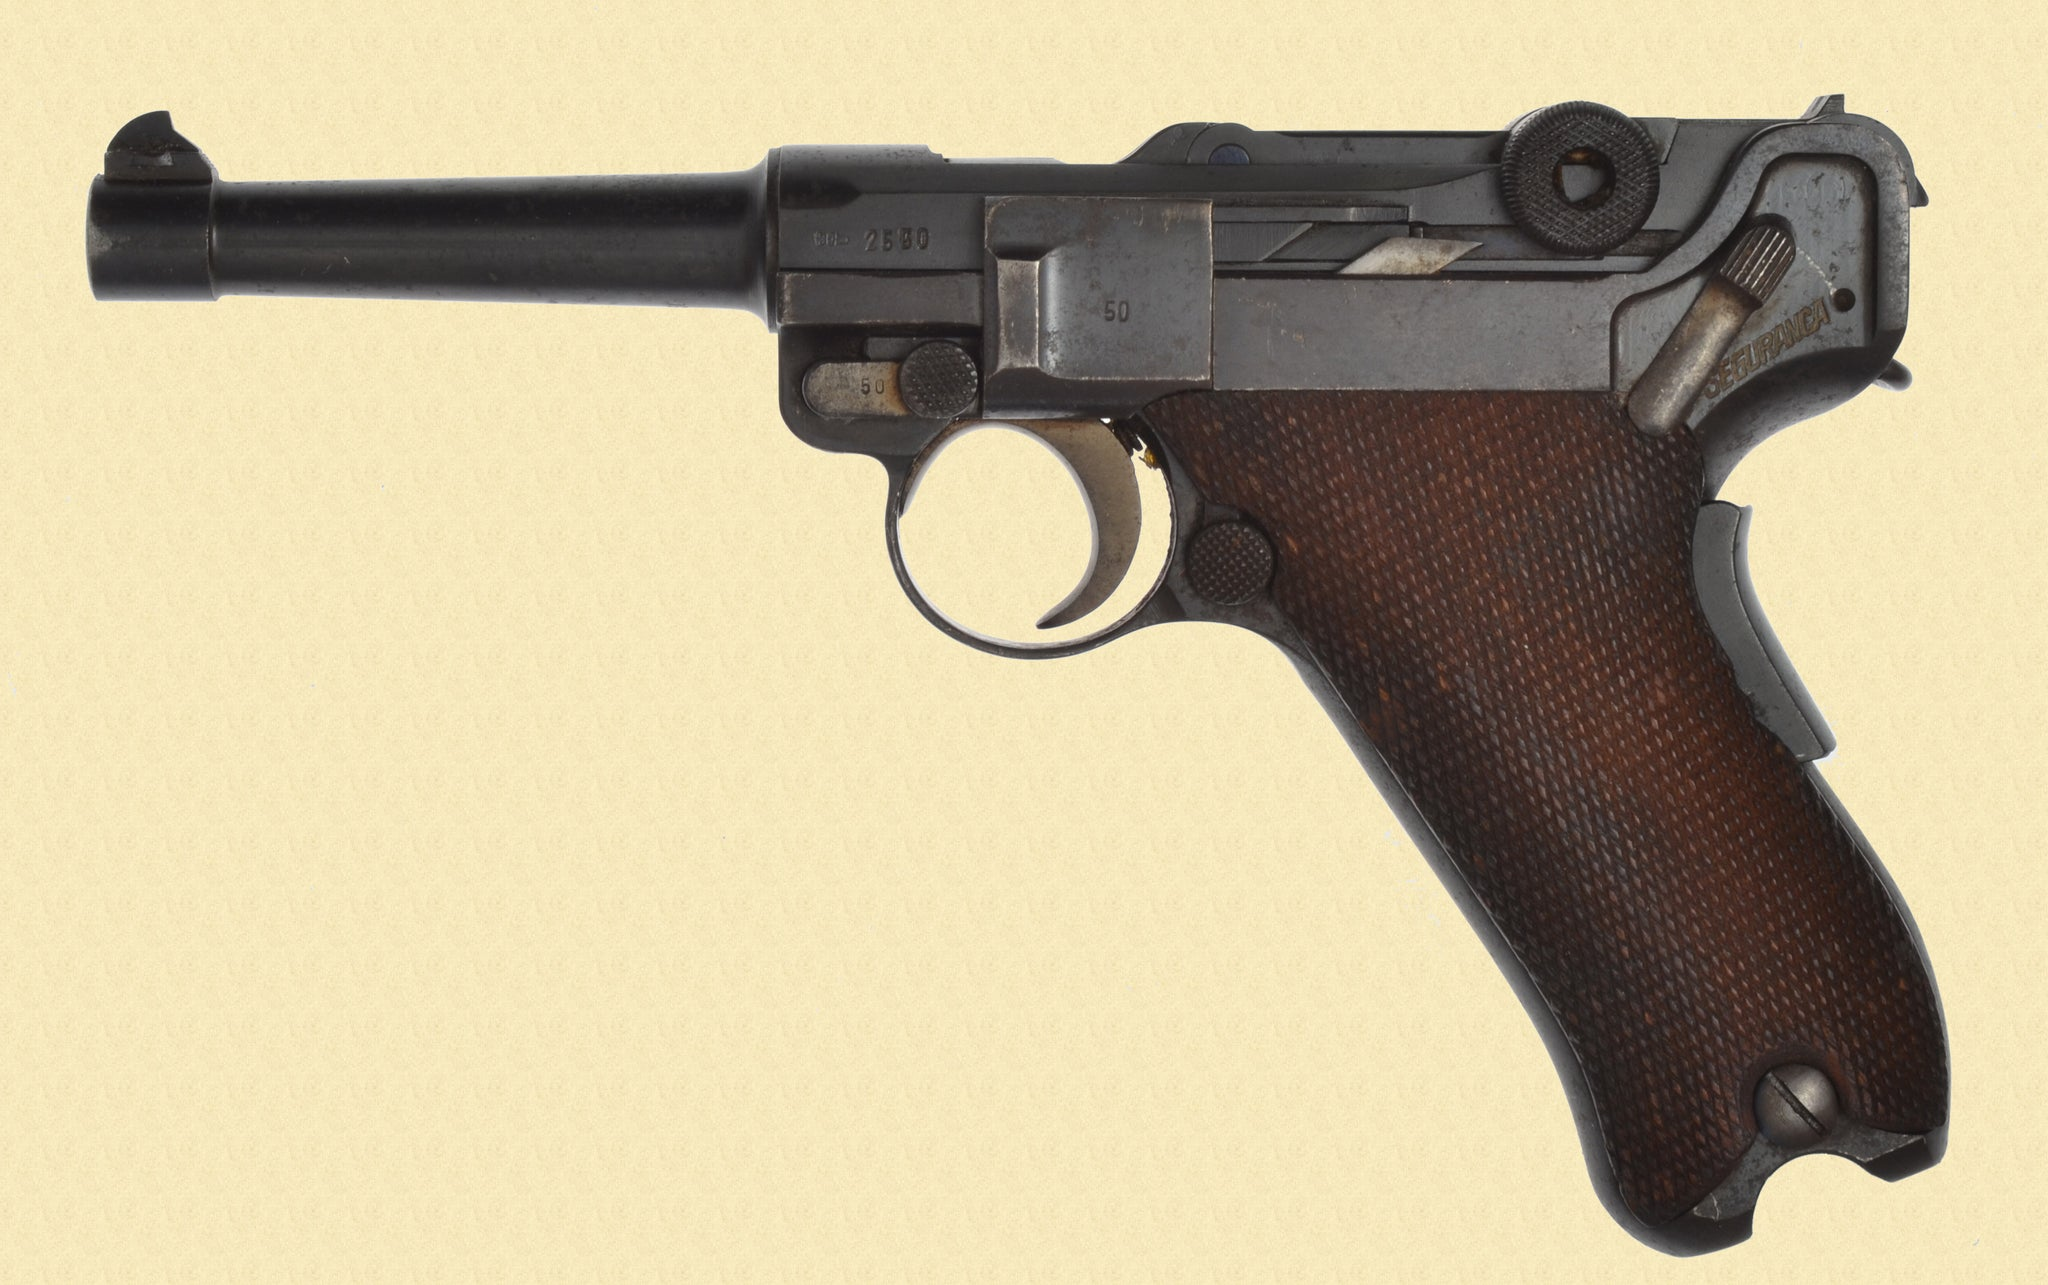 MAUSER BANNER PORTUGUESE NAVY